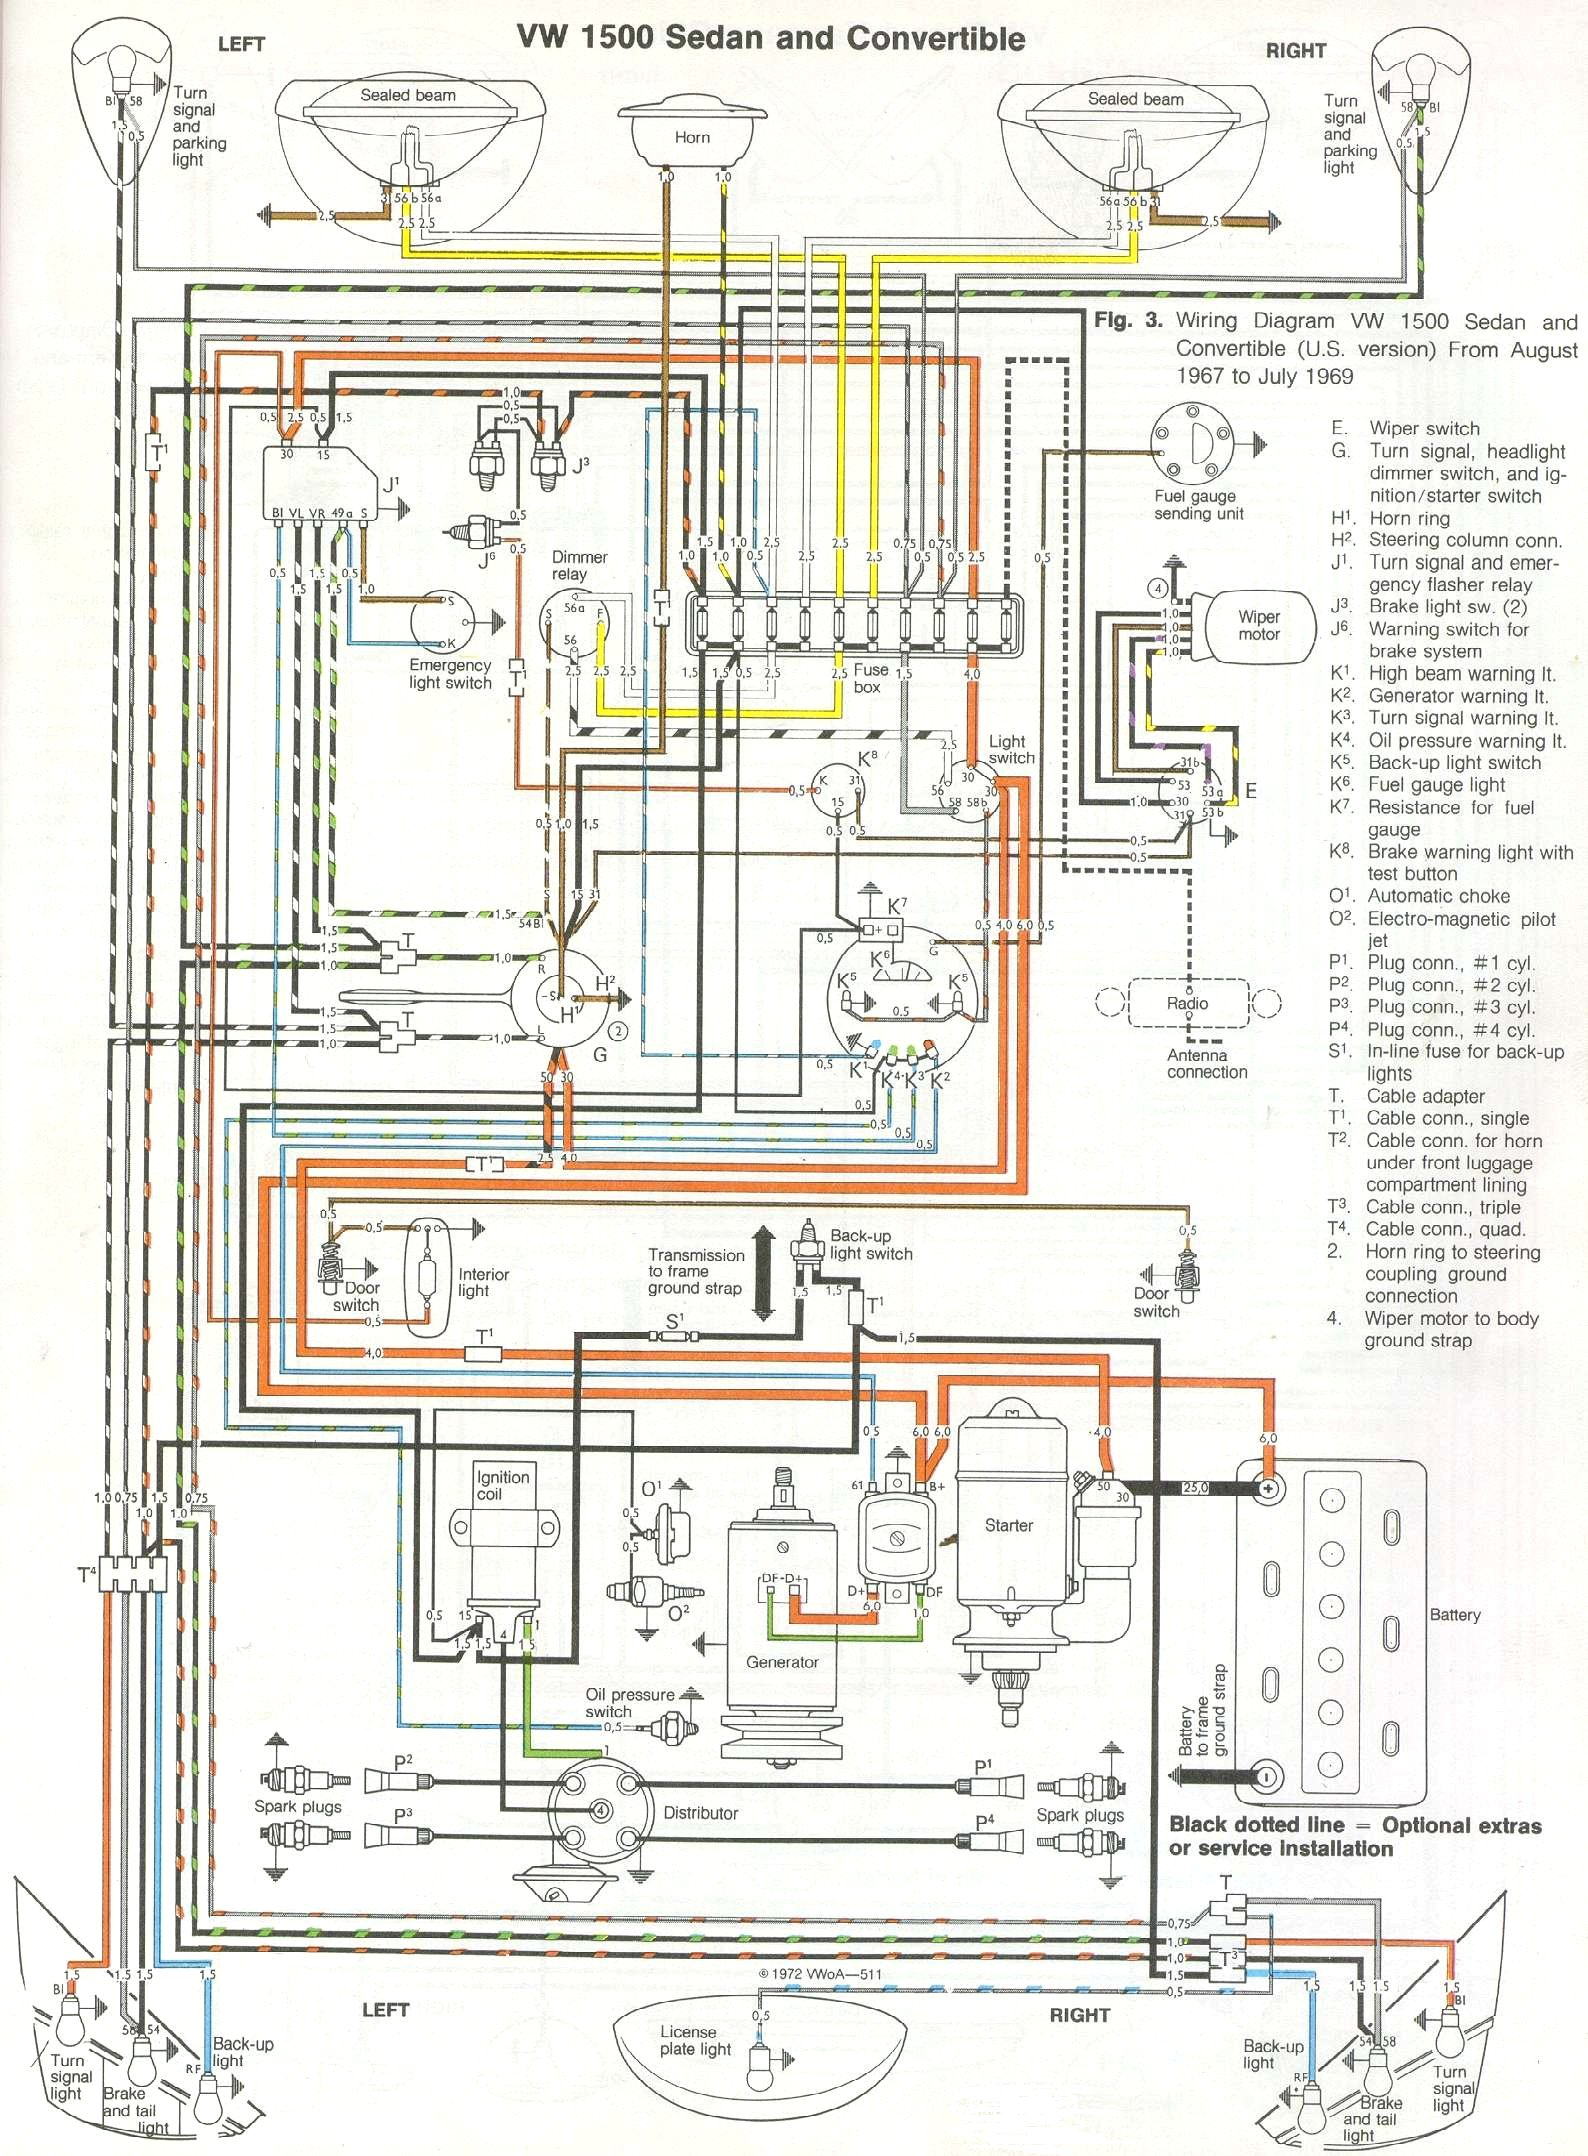 bug_6869 thesamba com type 1 wiring diagrams 73 vw beetle wiring diagram at nearapp.co